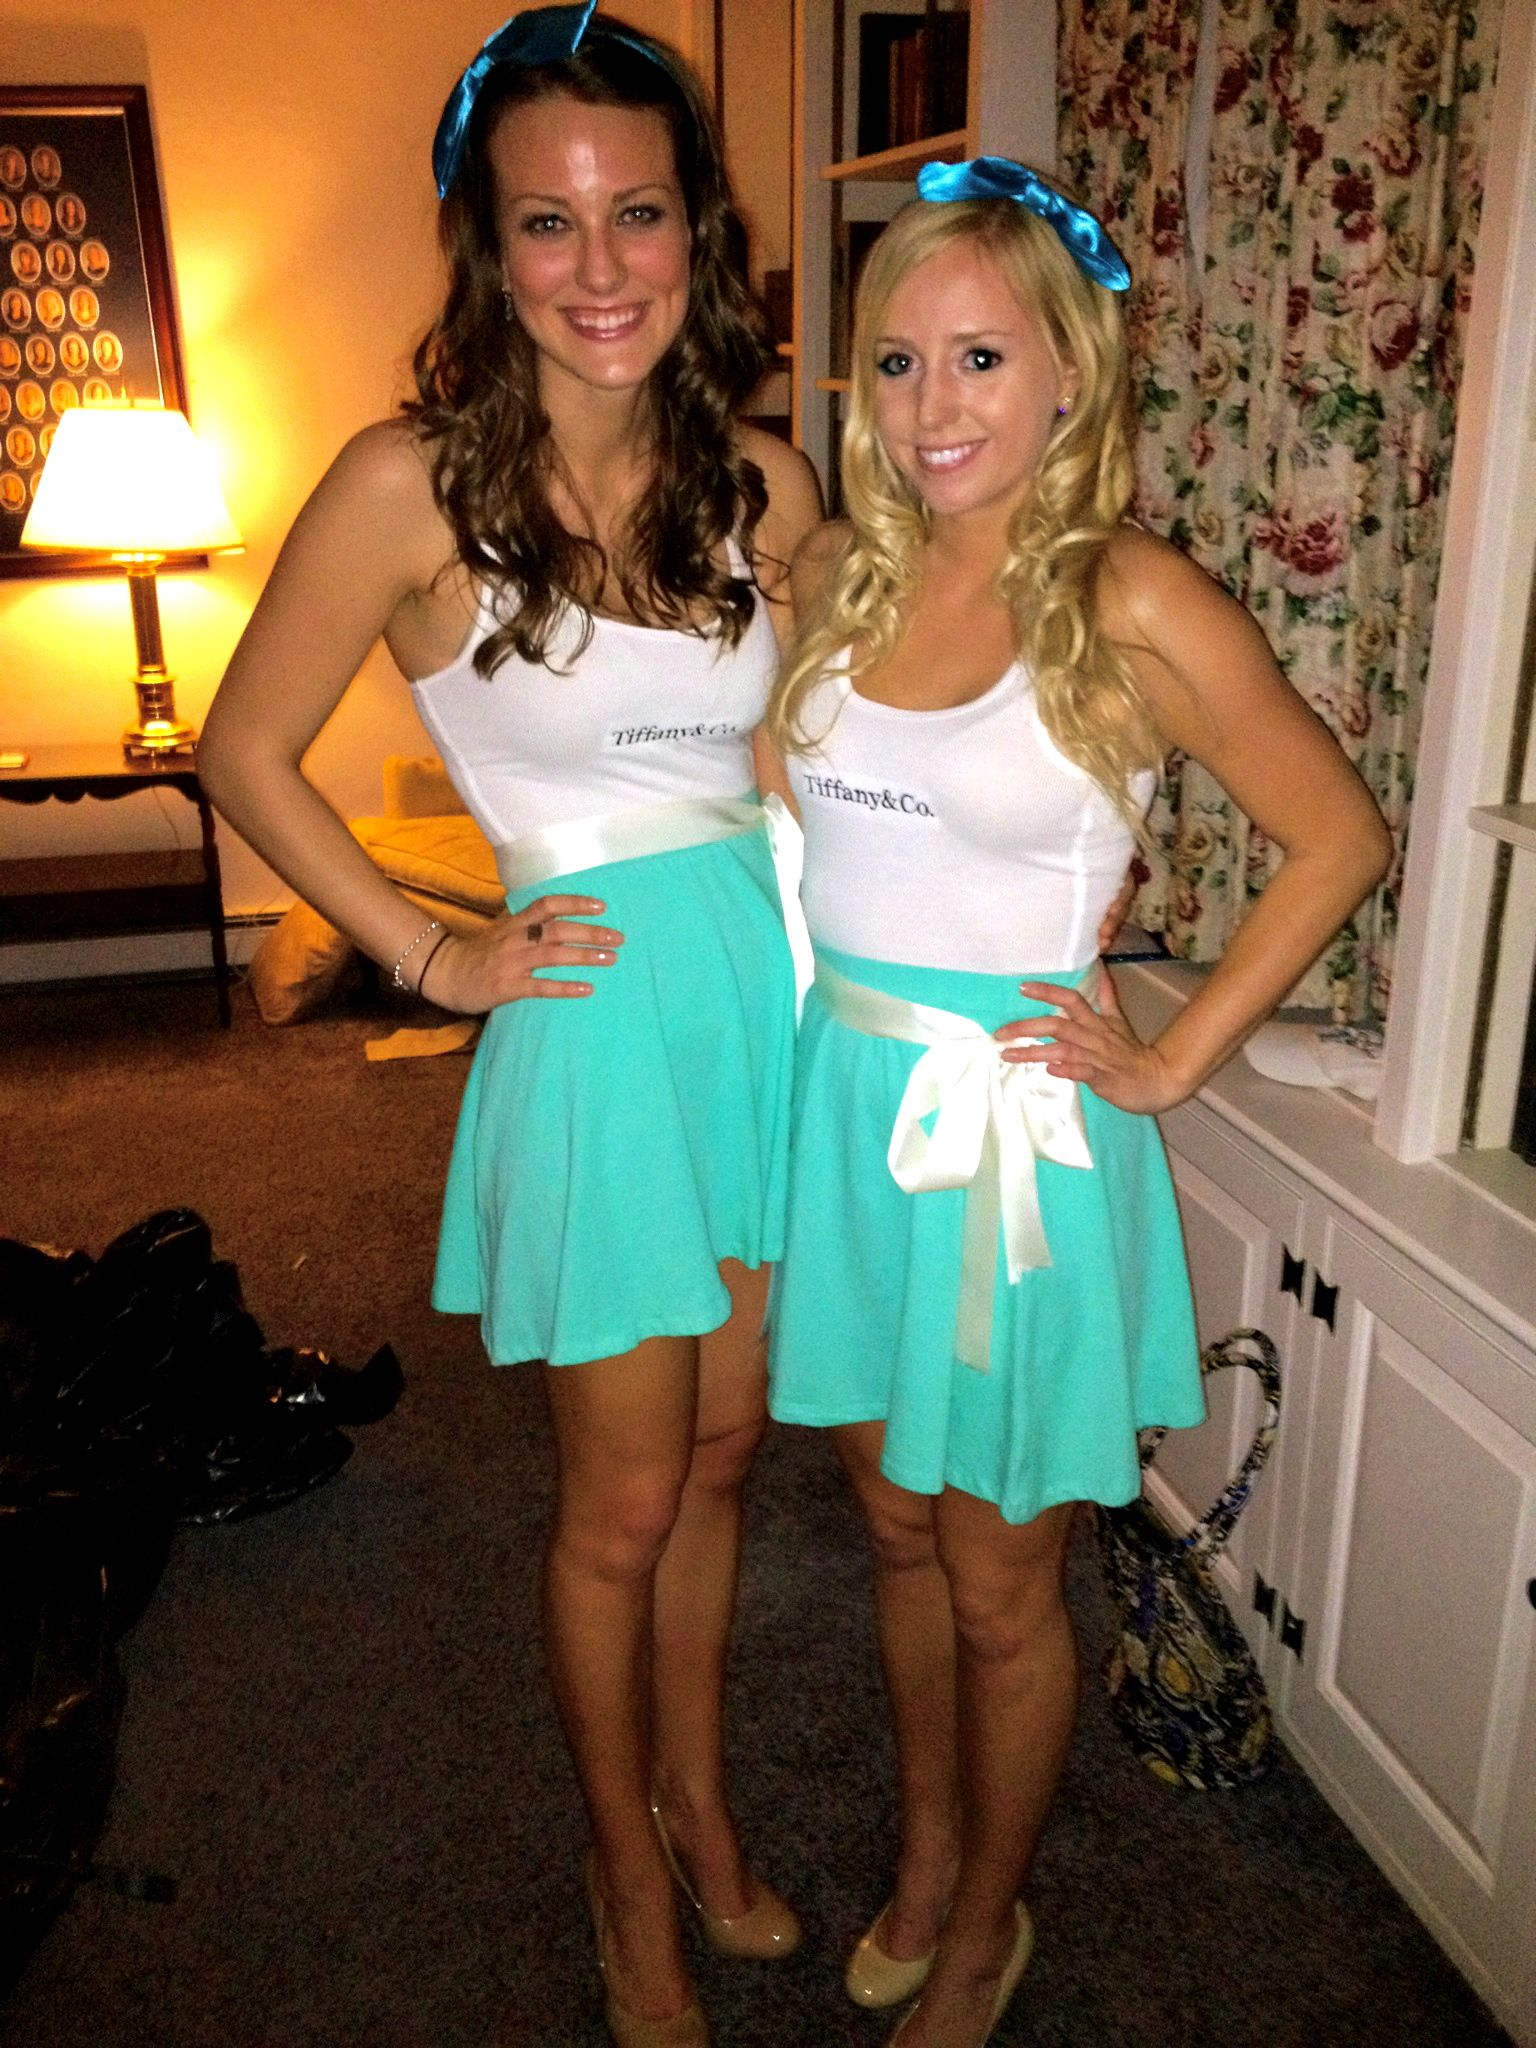 My Big and I on Halloween! #Tiffanys #Halloween #KKG #WVU  sc 1 st  Pinterest & My Big and I on Halloween! #Tiffanys #Halloween #KKG #WVU | Prissy ...